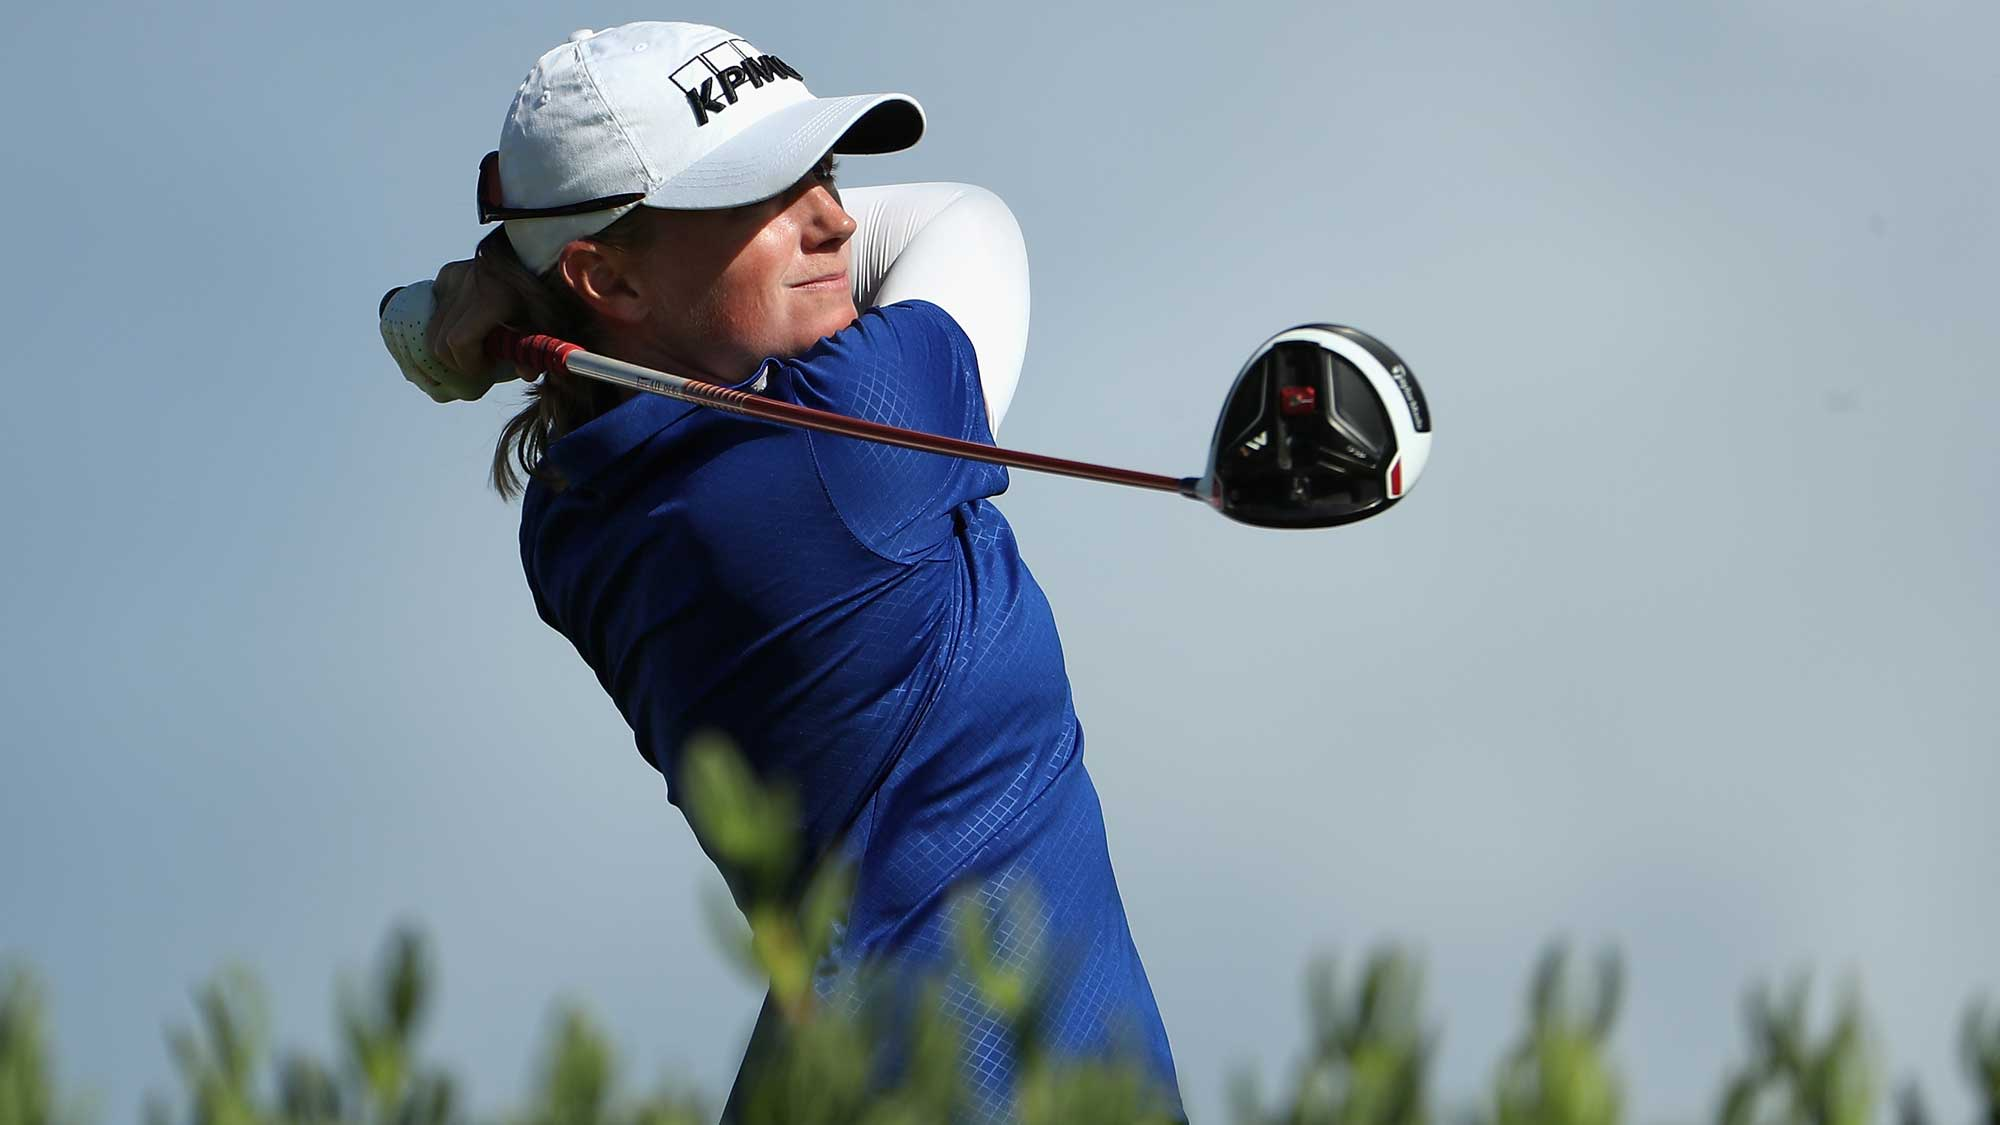 Stacy Lewis plays a tee shot on the 13th hole during the first round of the LPGA LOTTE Championship Presented By Hershey